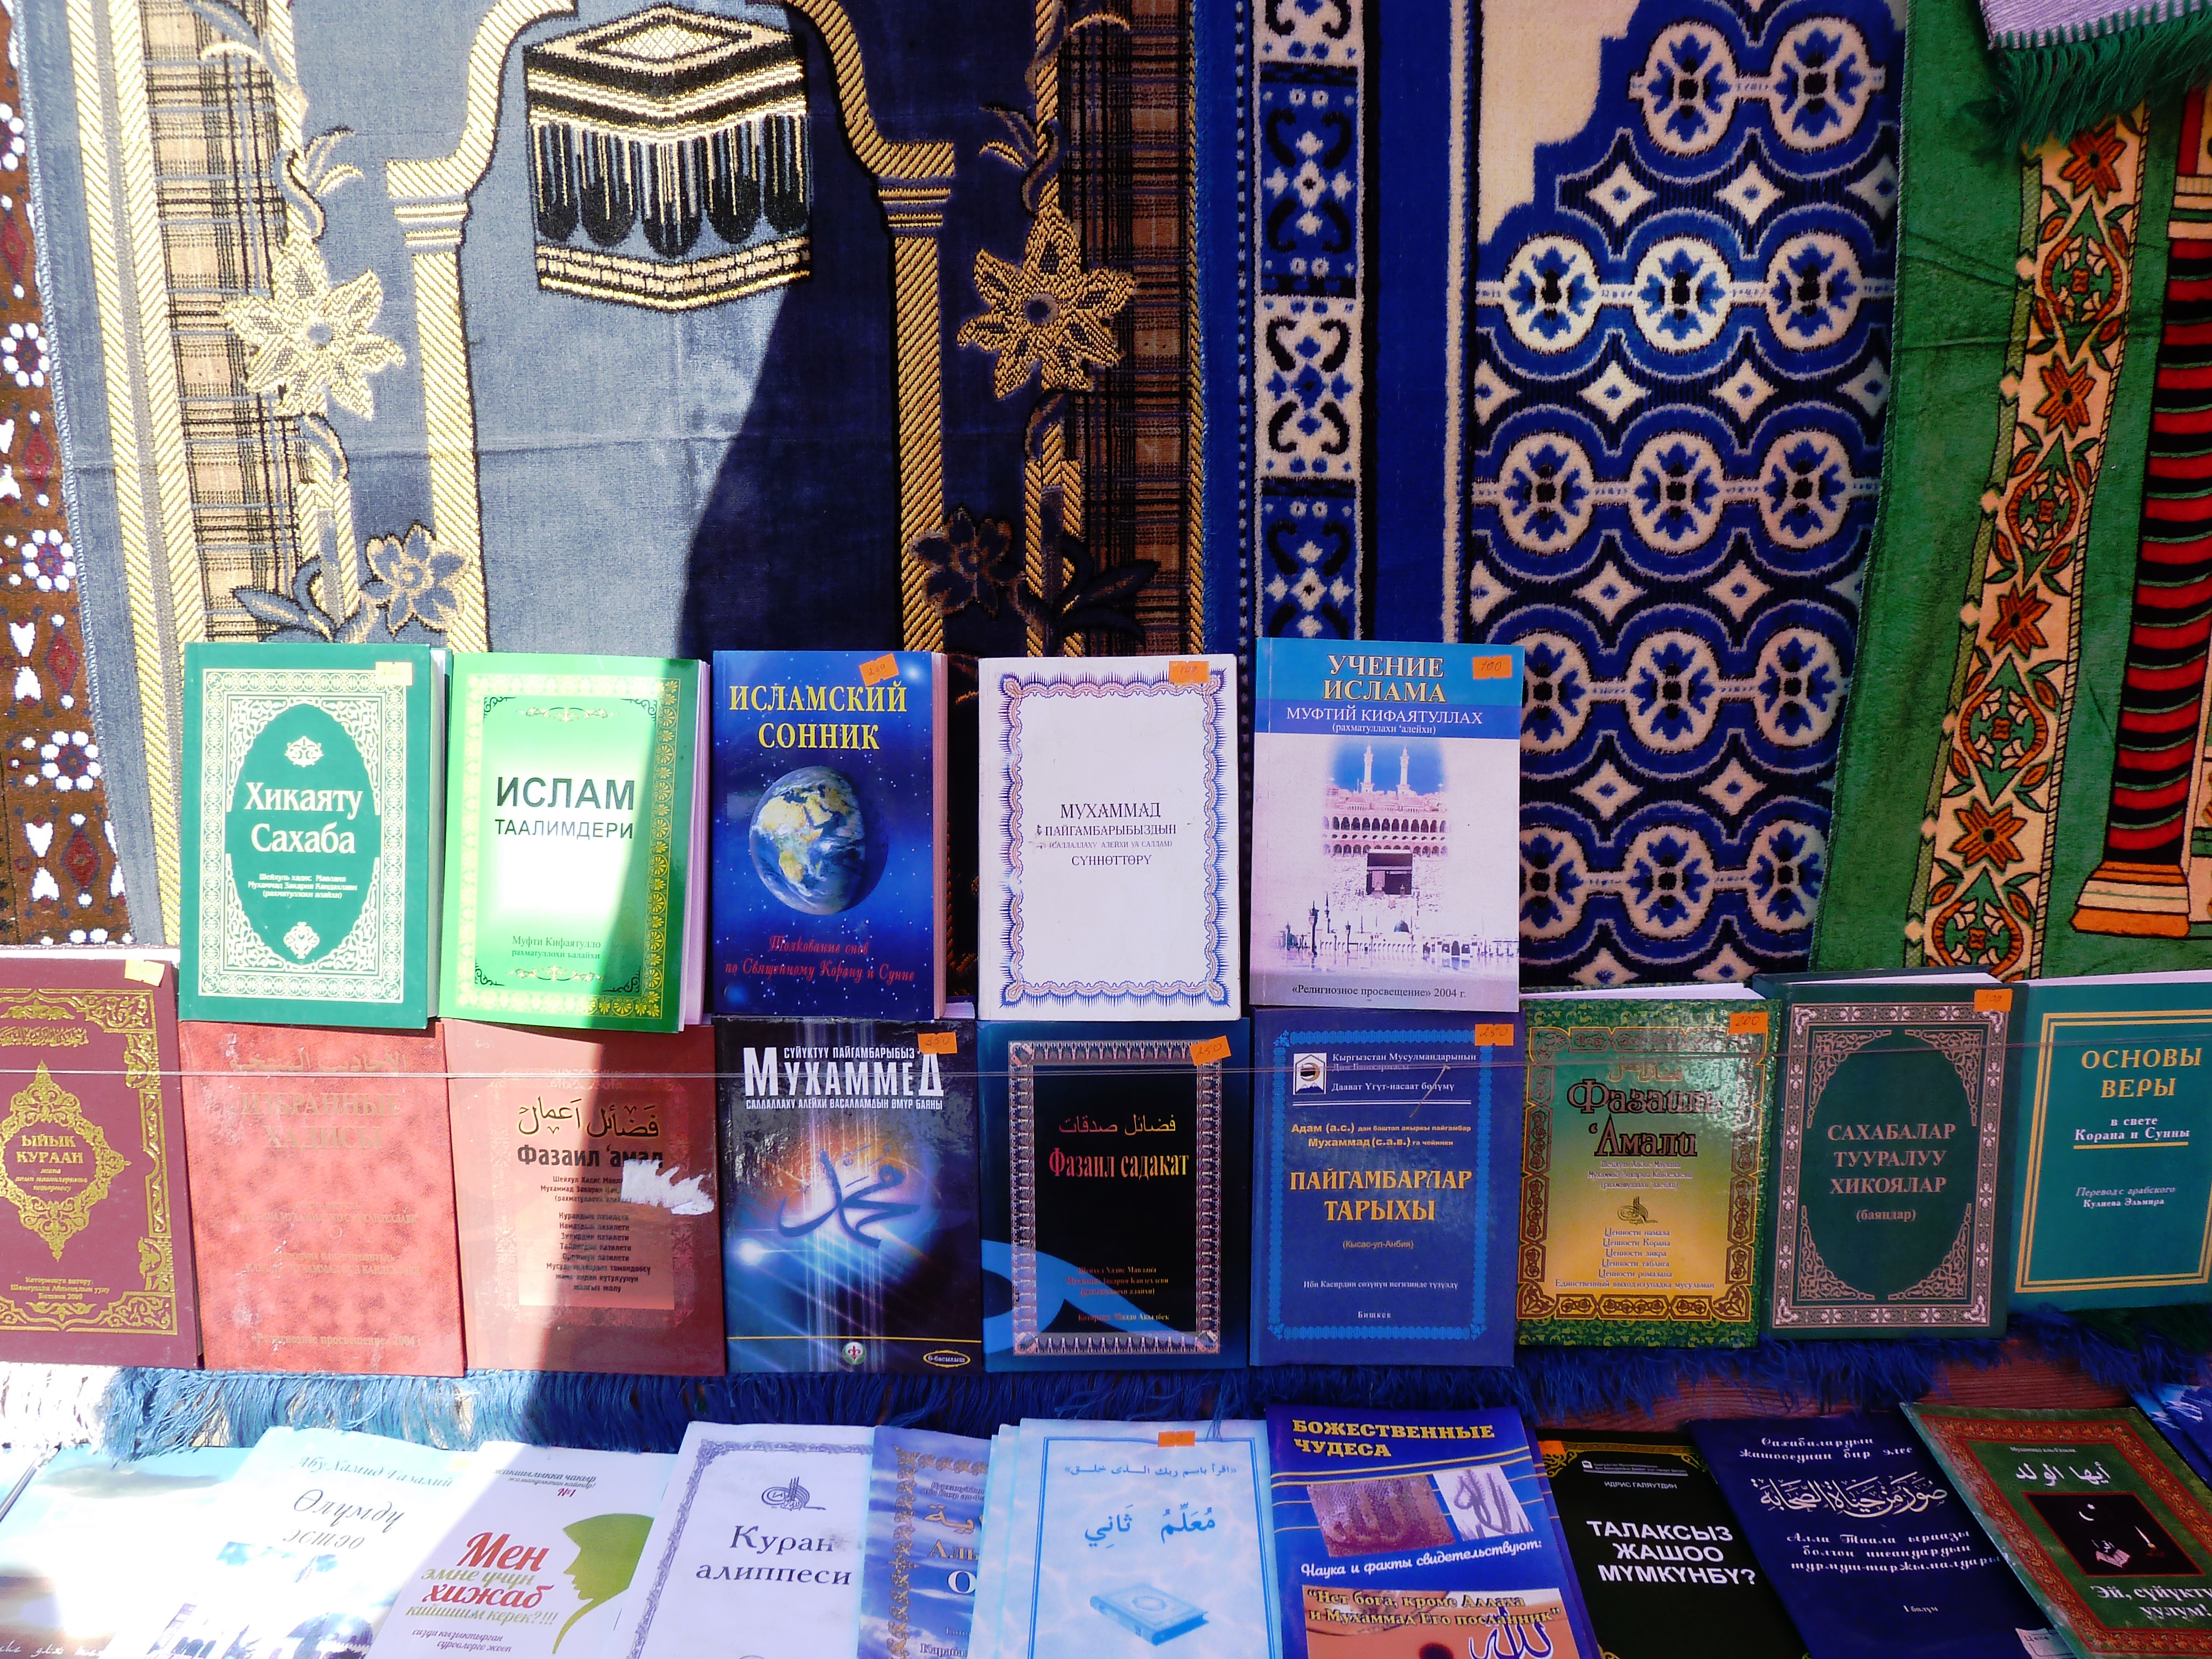 Hadith collection of the Tablighi Jama'at